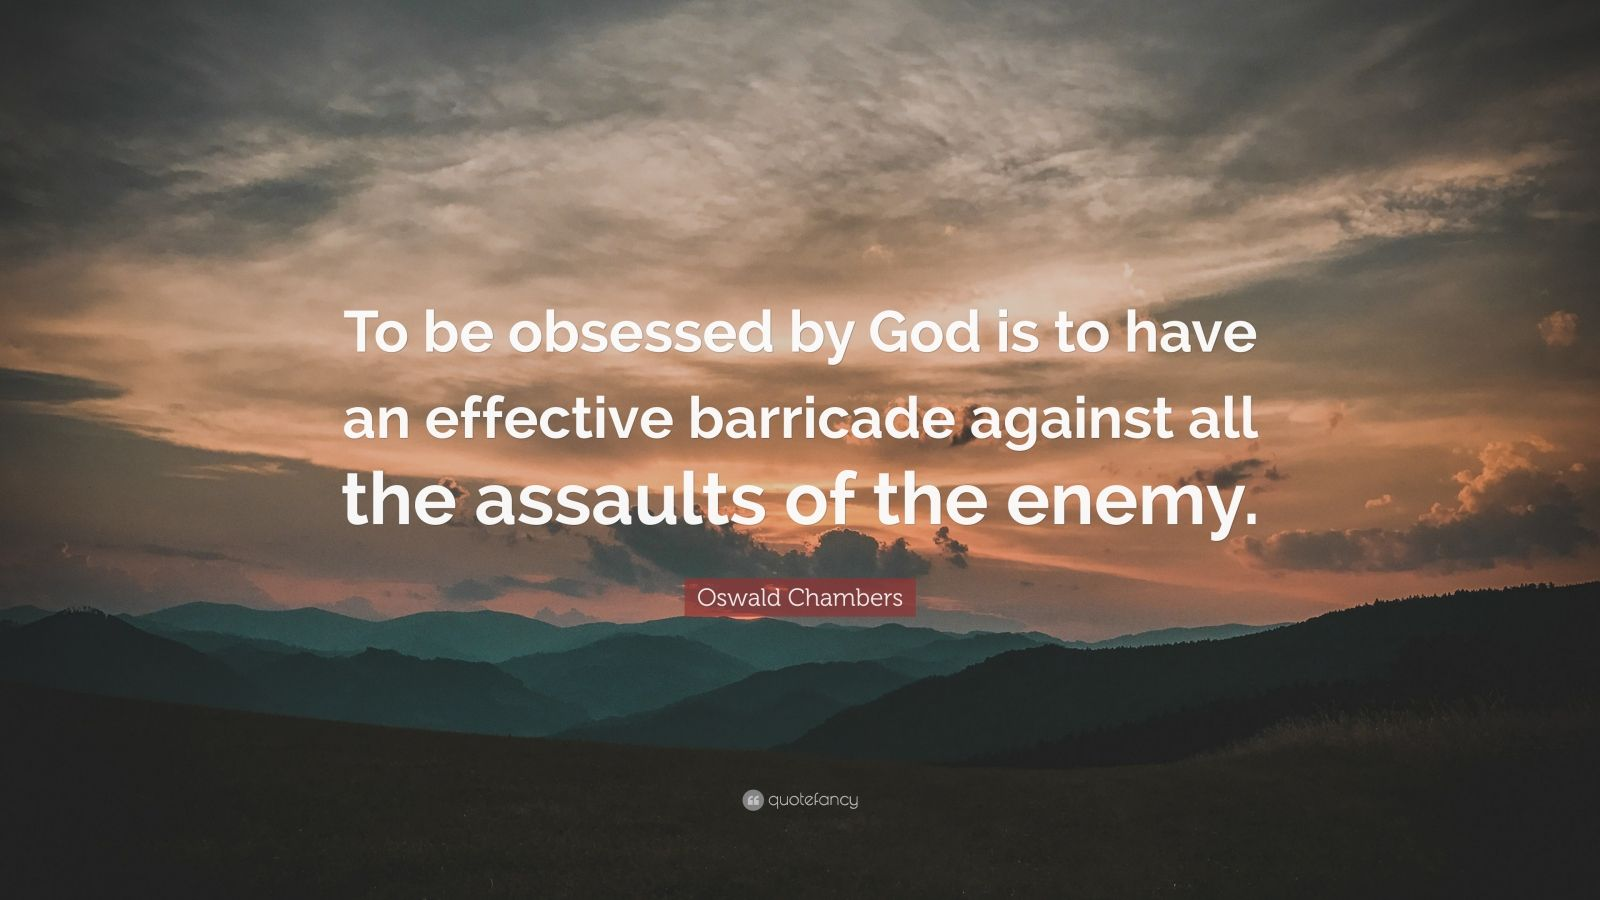 """Oswald Chambers Quote: """"To be obsessed by God is to have an effective barricade against all the assaults of the enemy."""""""